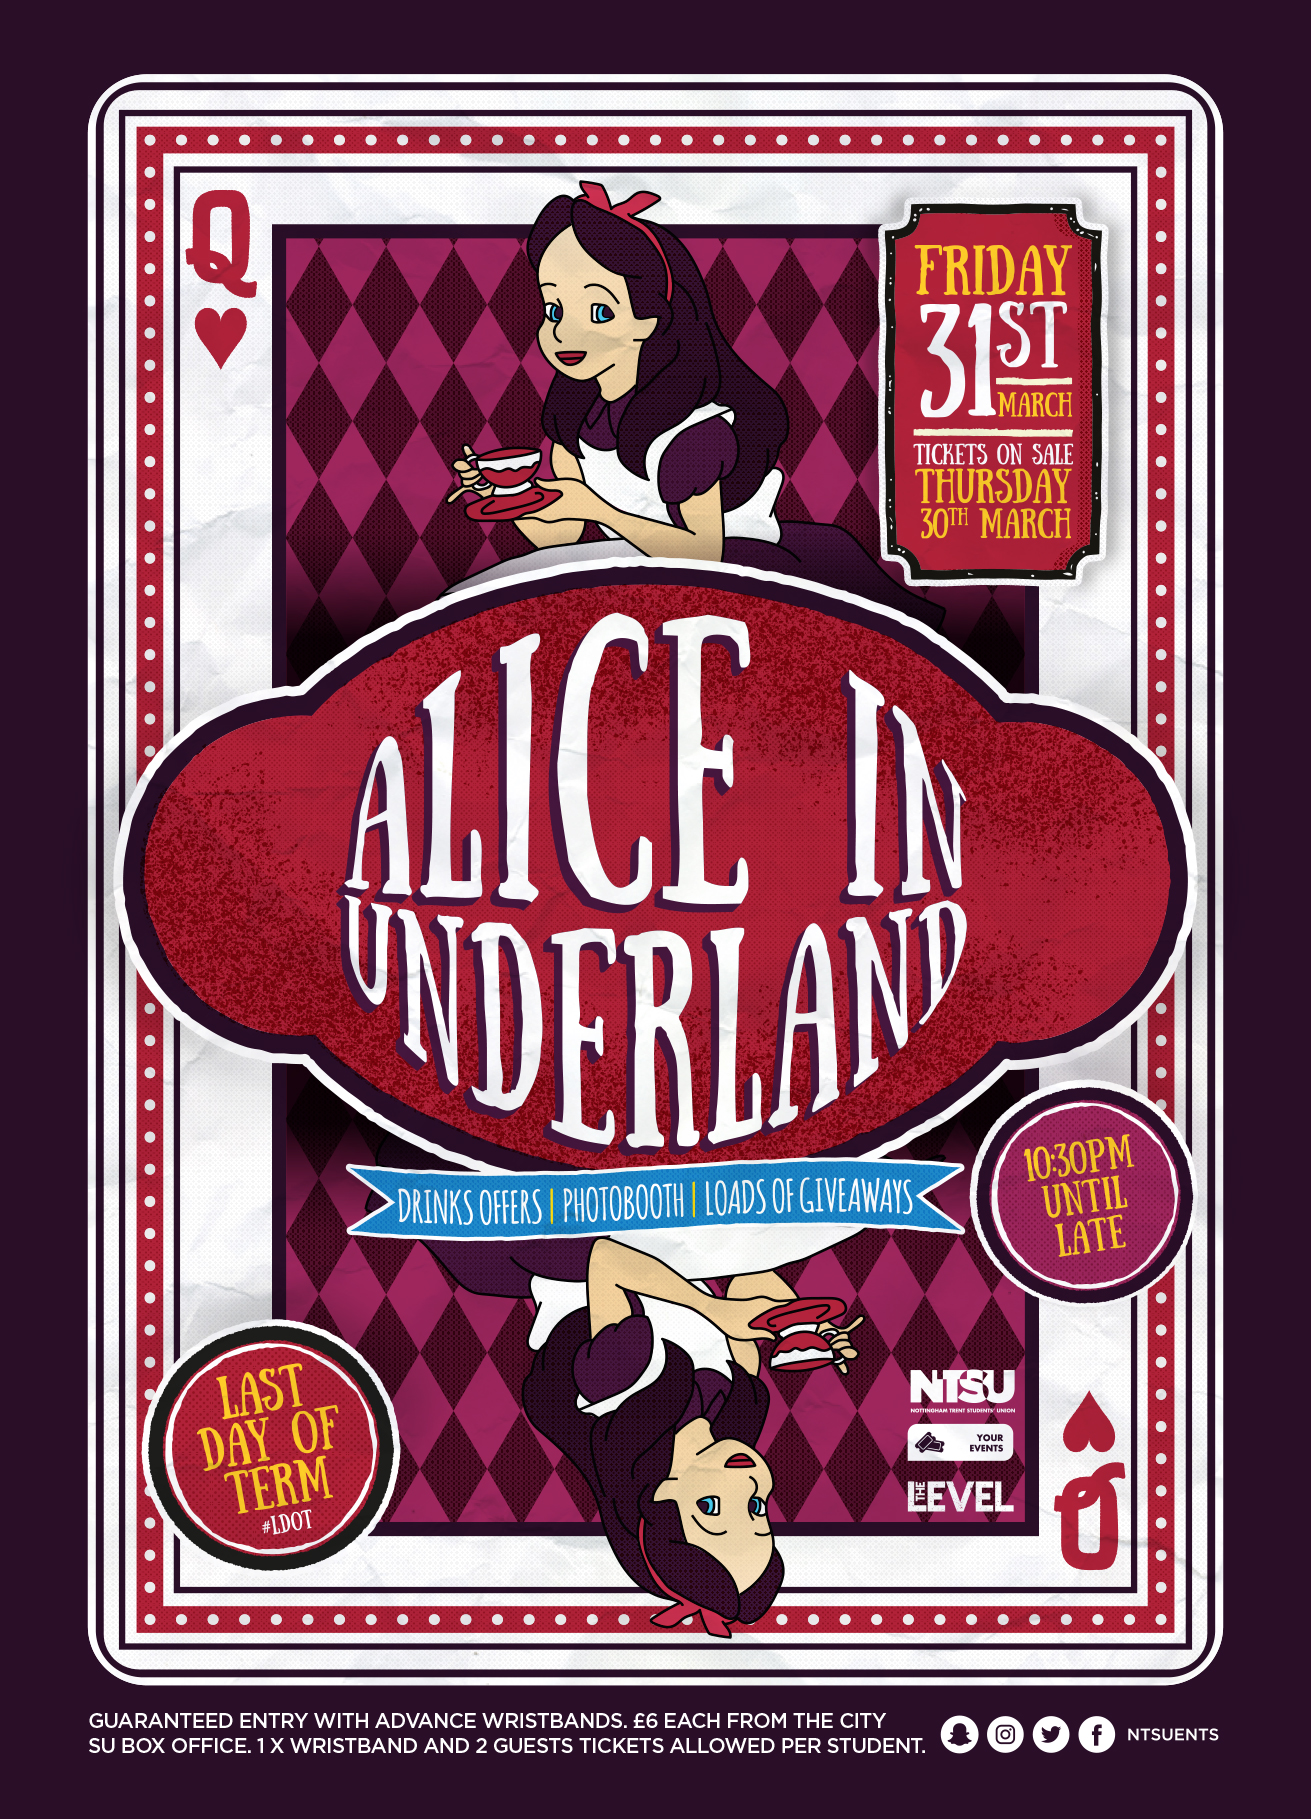 ldot-alice-in-wonderland-city-flyers-a6-2